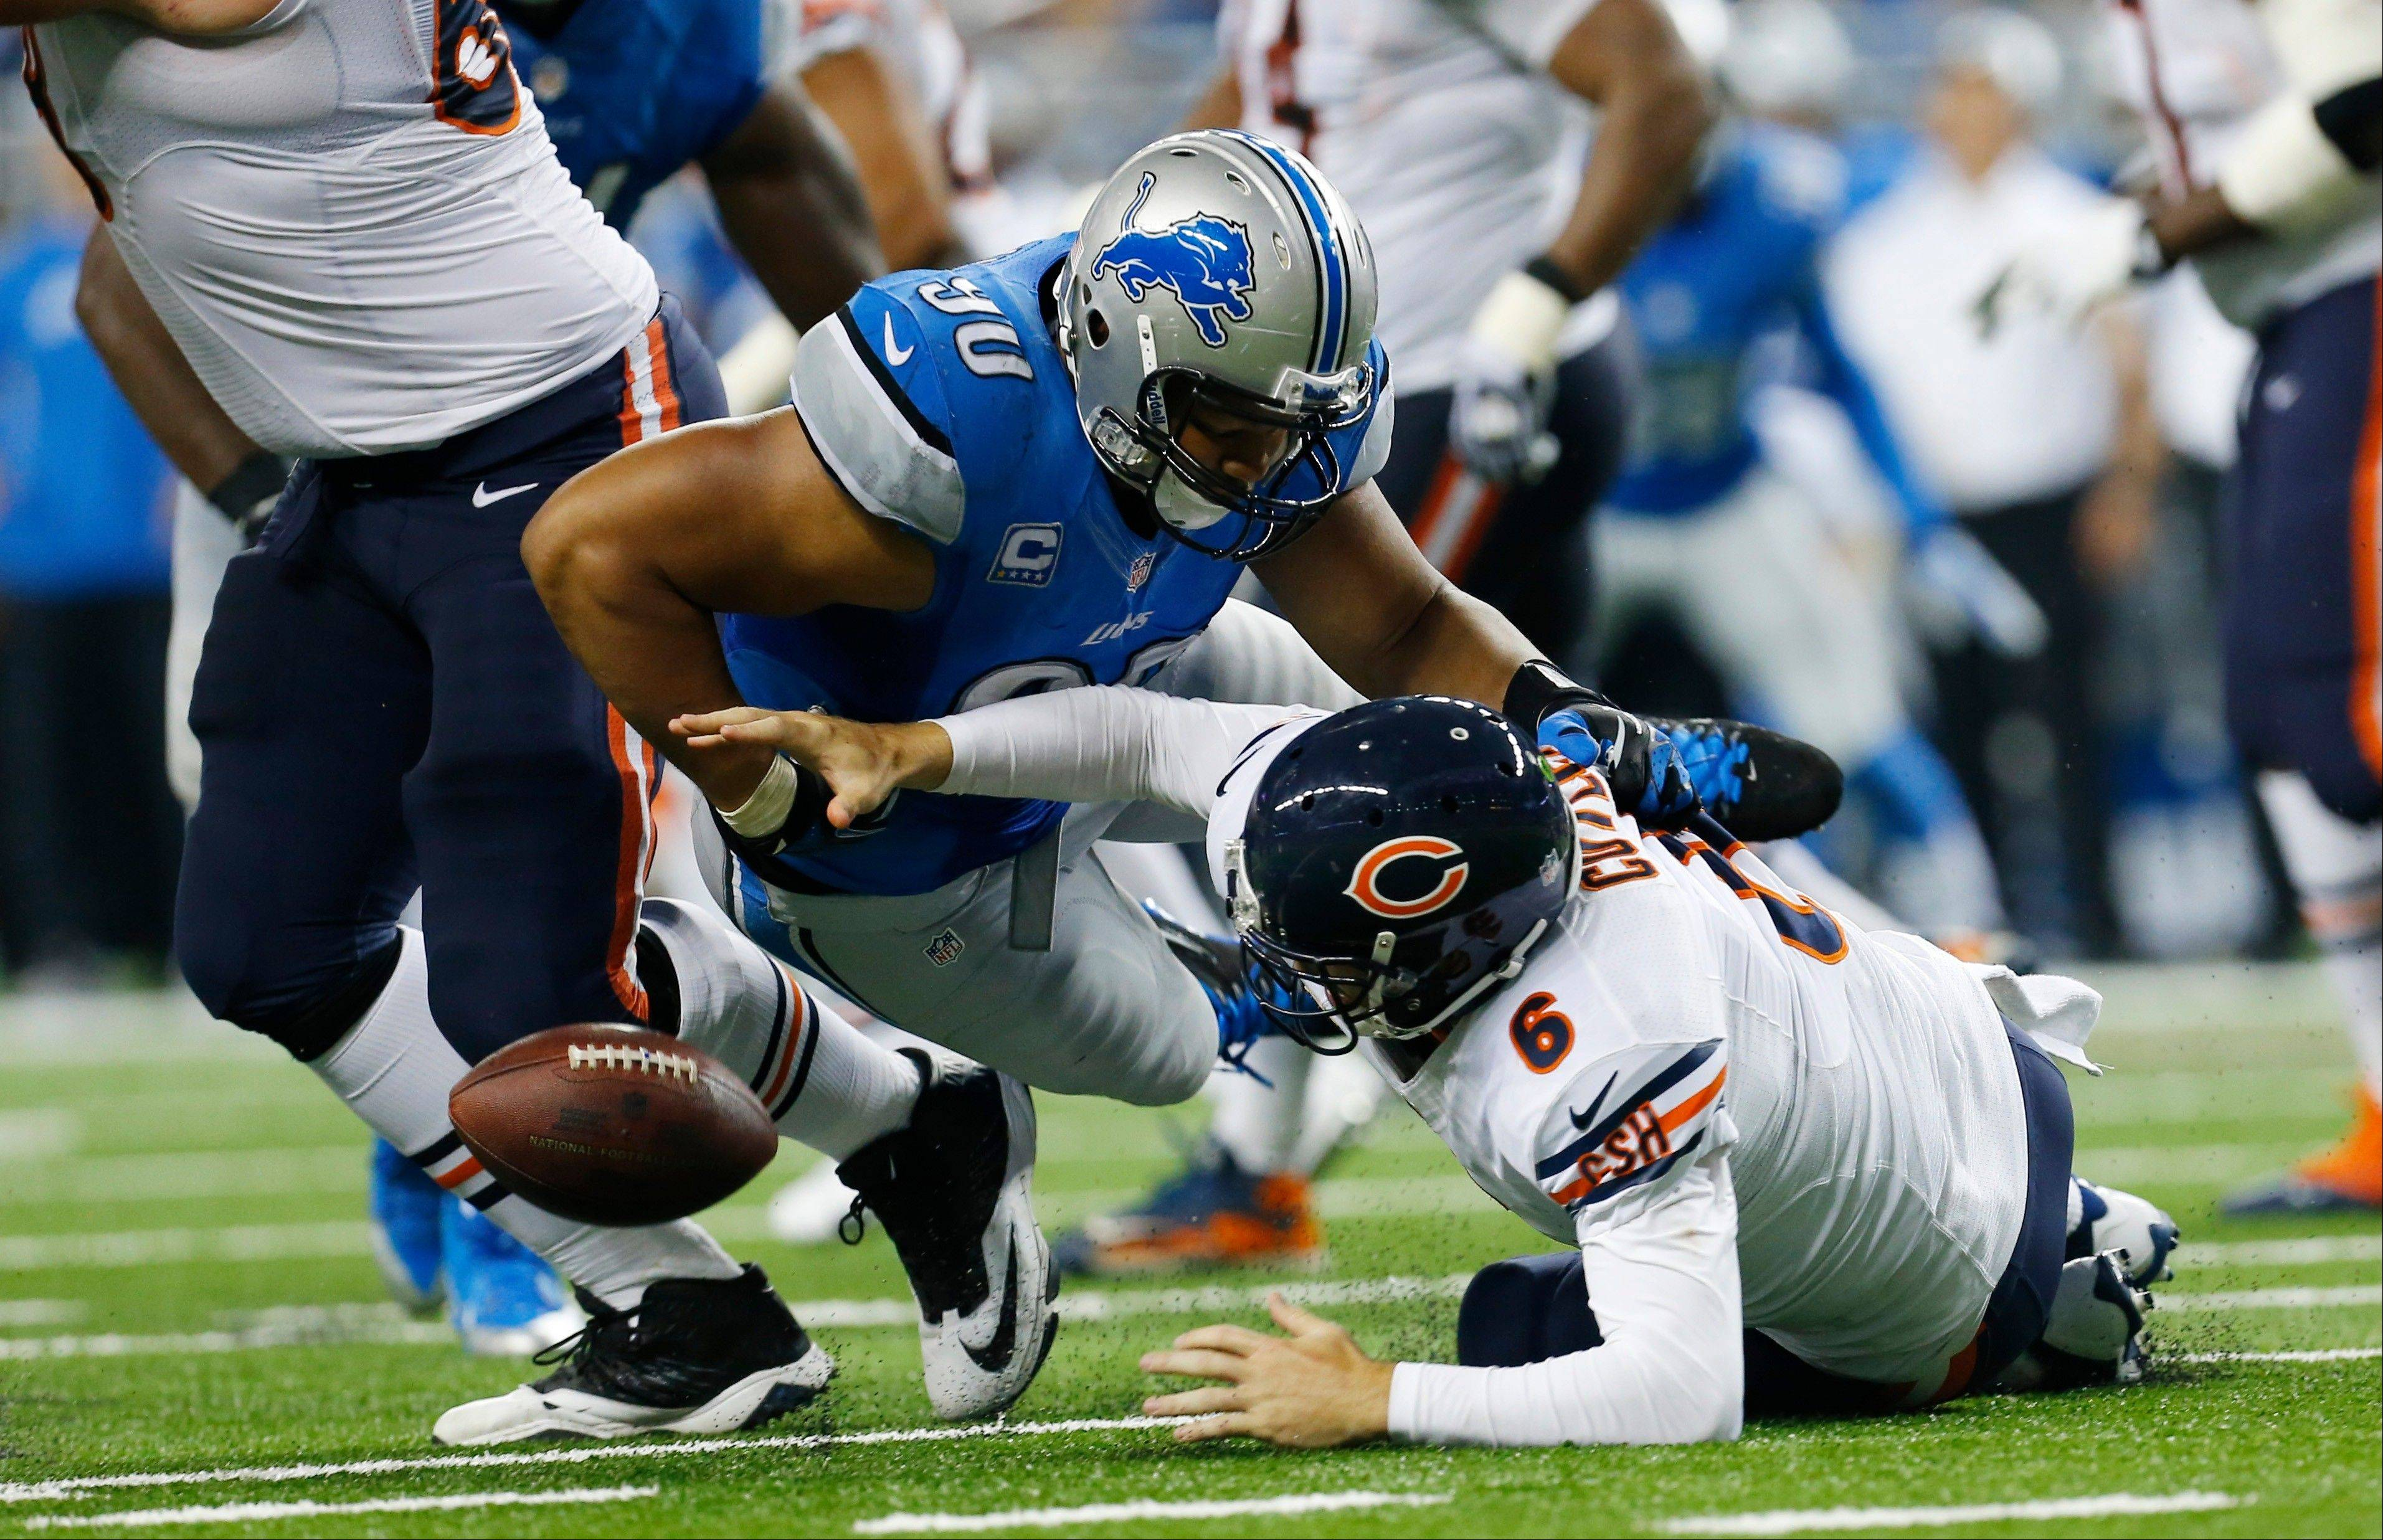 Bears quarterback Jay Cutler fumbles after behing hit by the Lions' Ndamukong Suh in the third quarter Sunday. The Lions' Nick Fairley recovered the ball and returned it 4 yards for a touchdown.